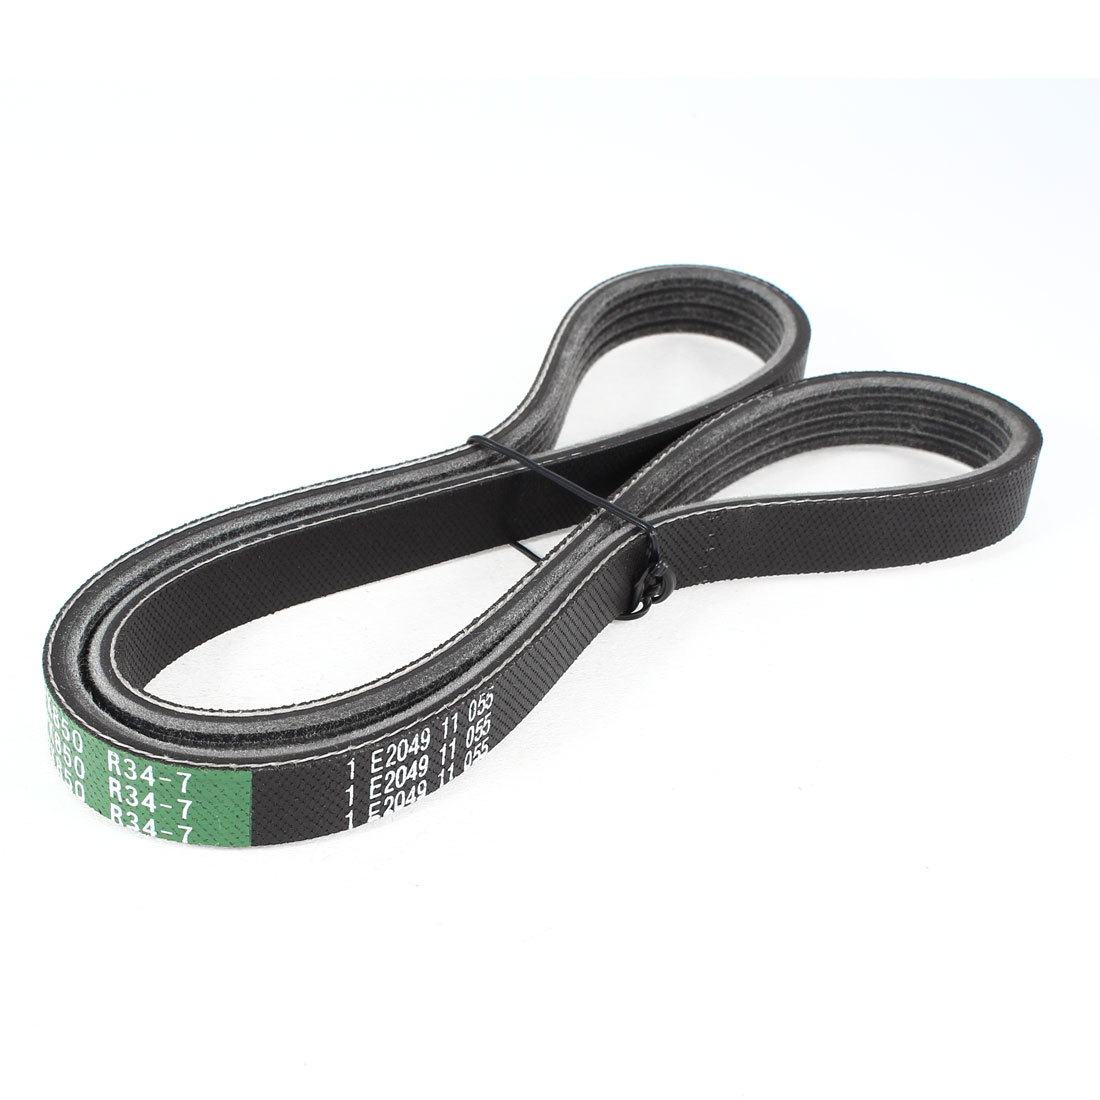 "Industry Black Girth 43.9"" Rubber Wedge Rope Band Vee Drive V Belt"